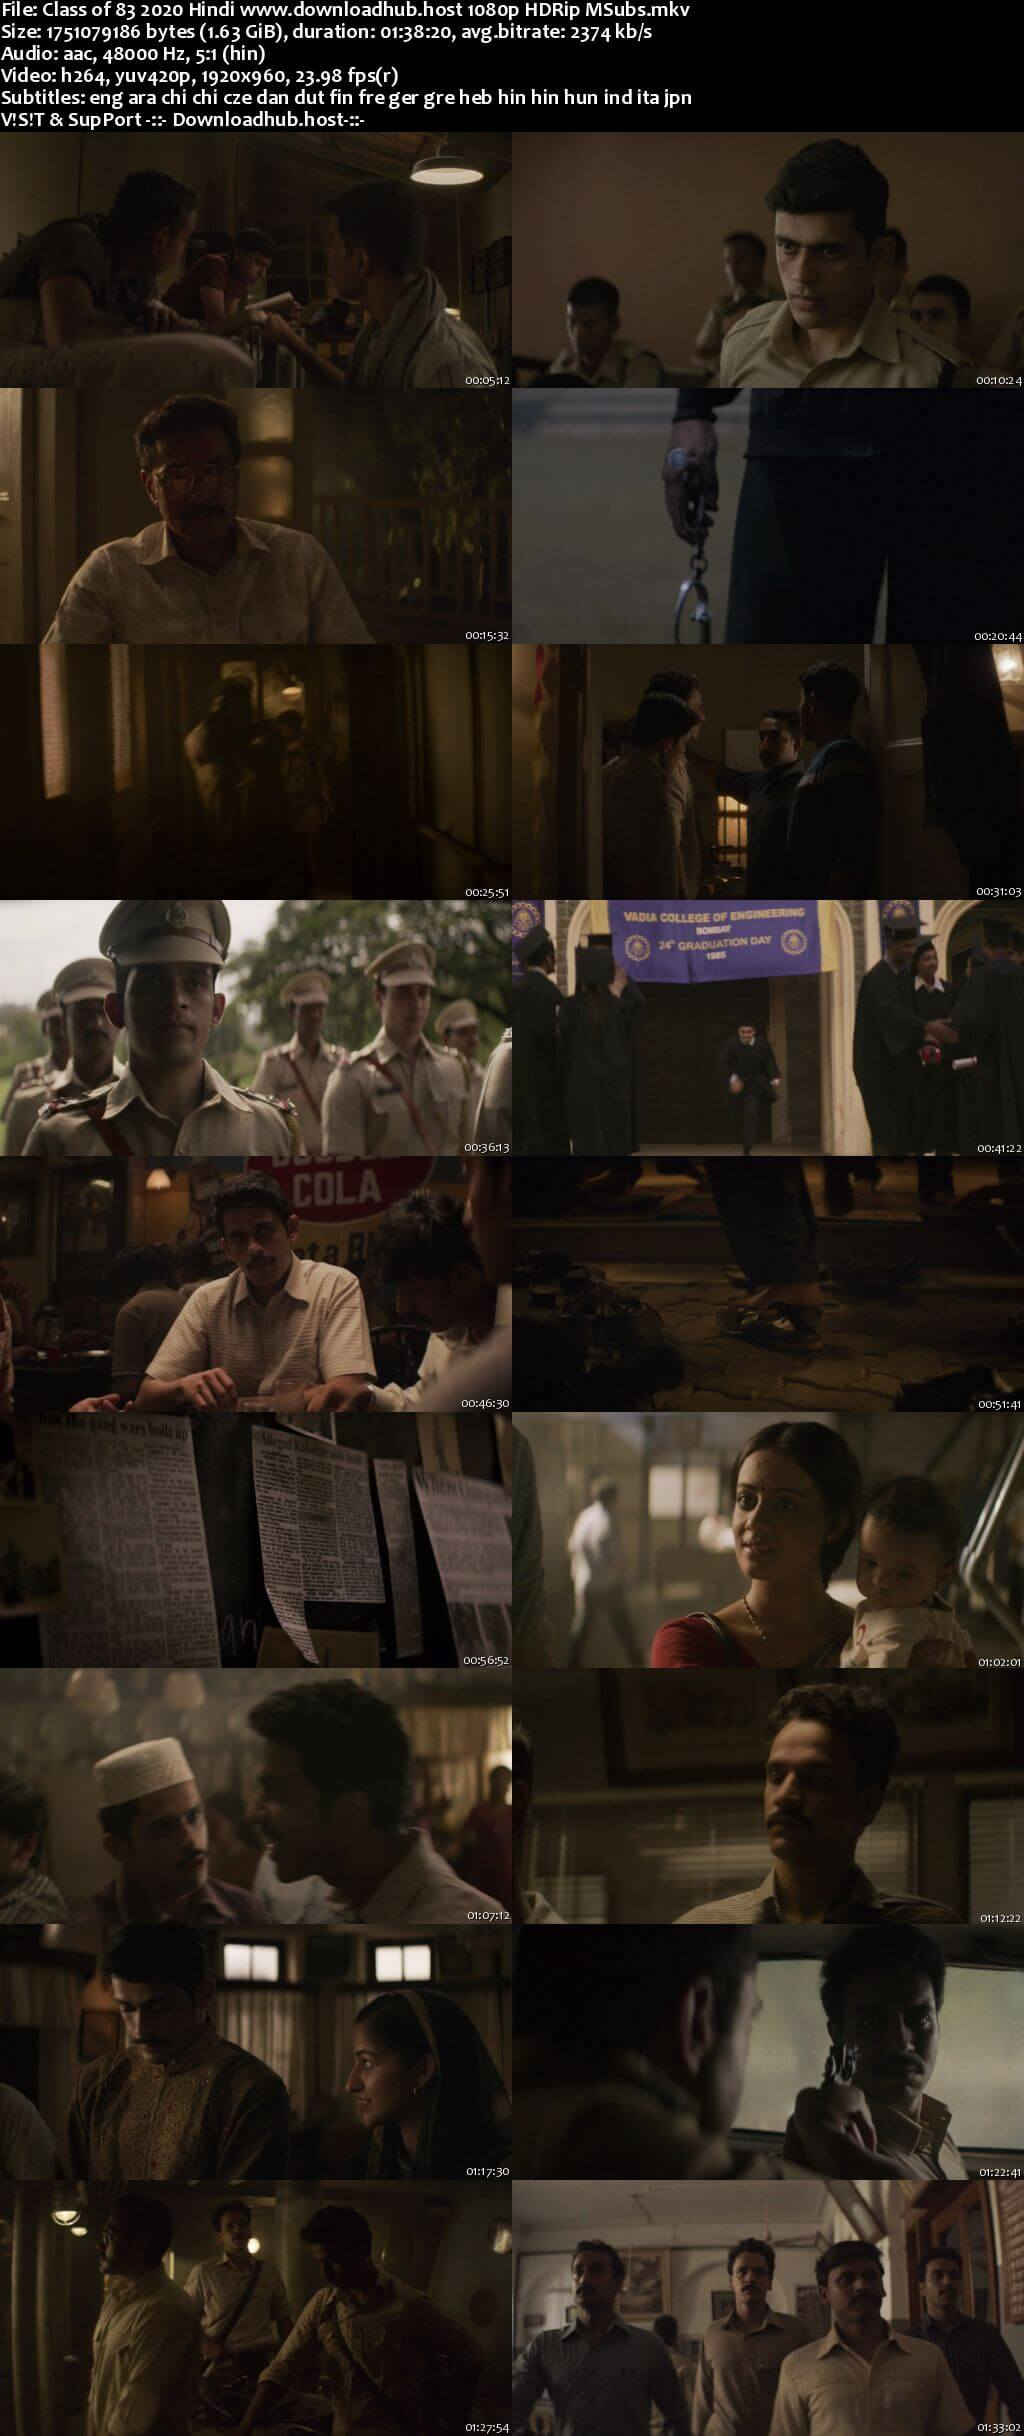 Class of 83 2020 Hindi 1080p HDRip MSubs